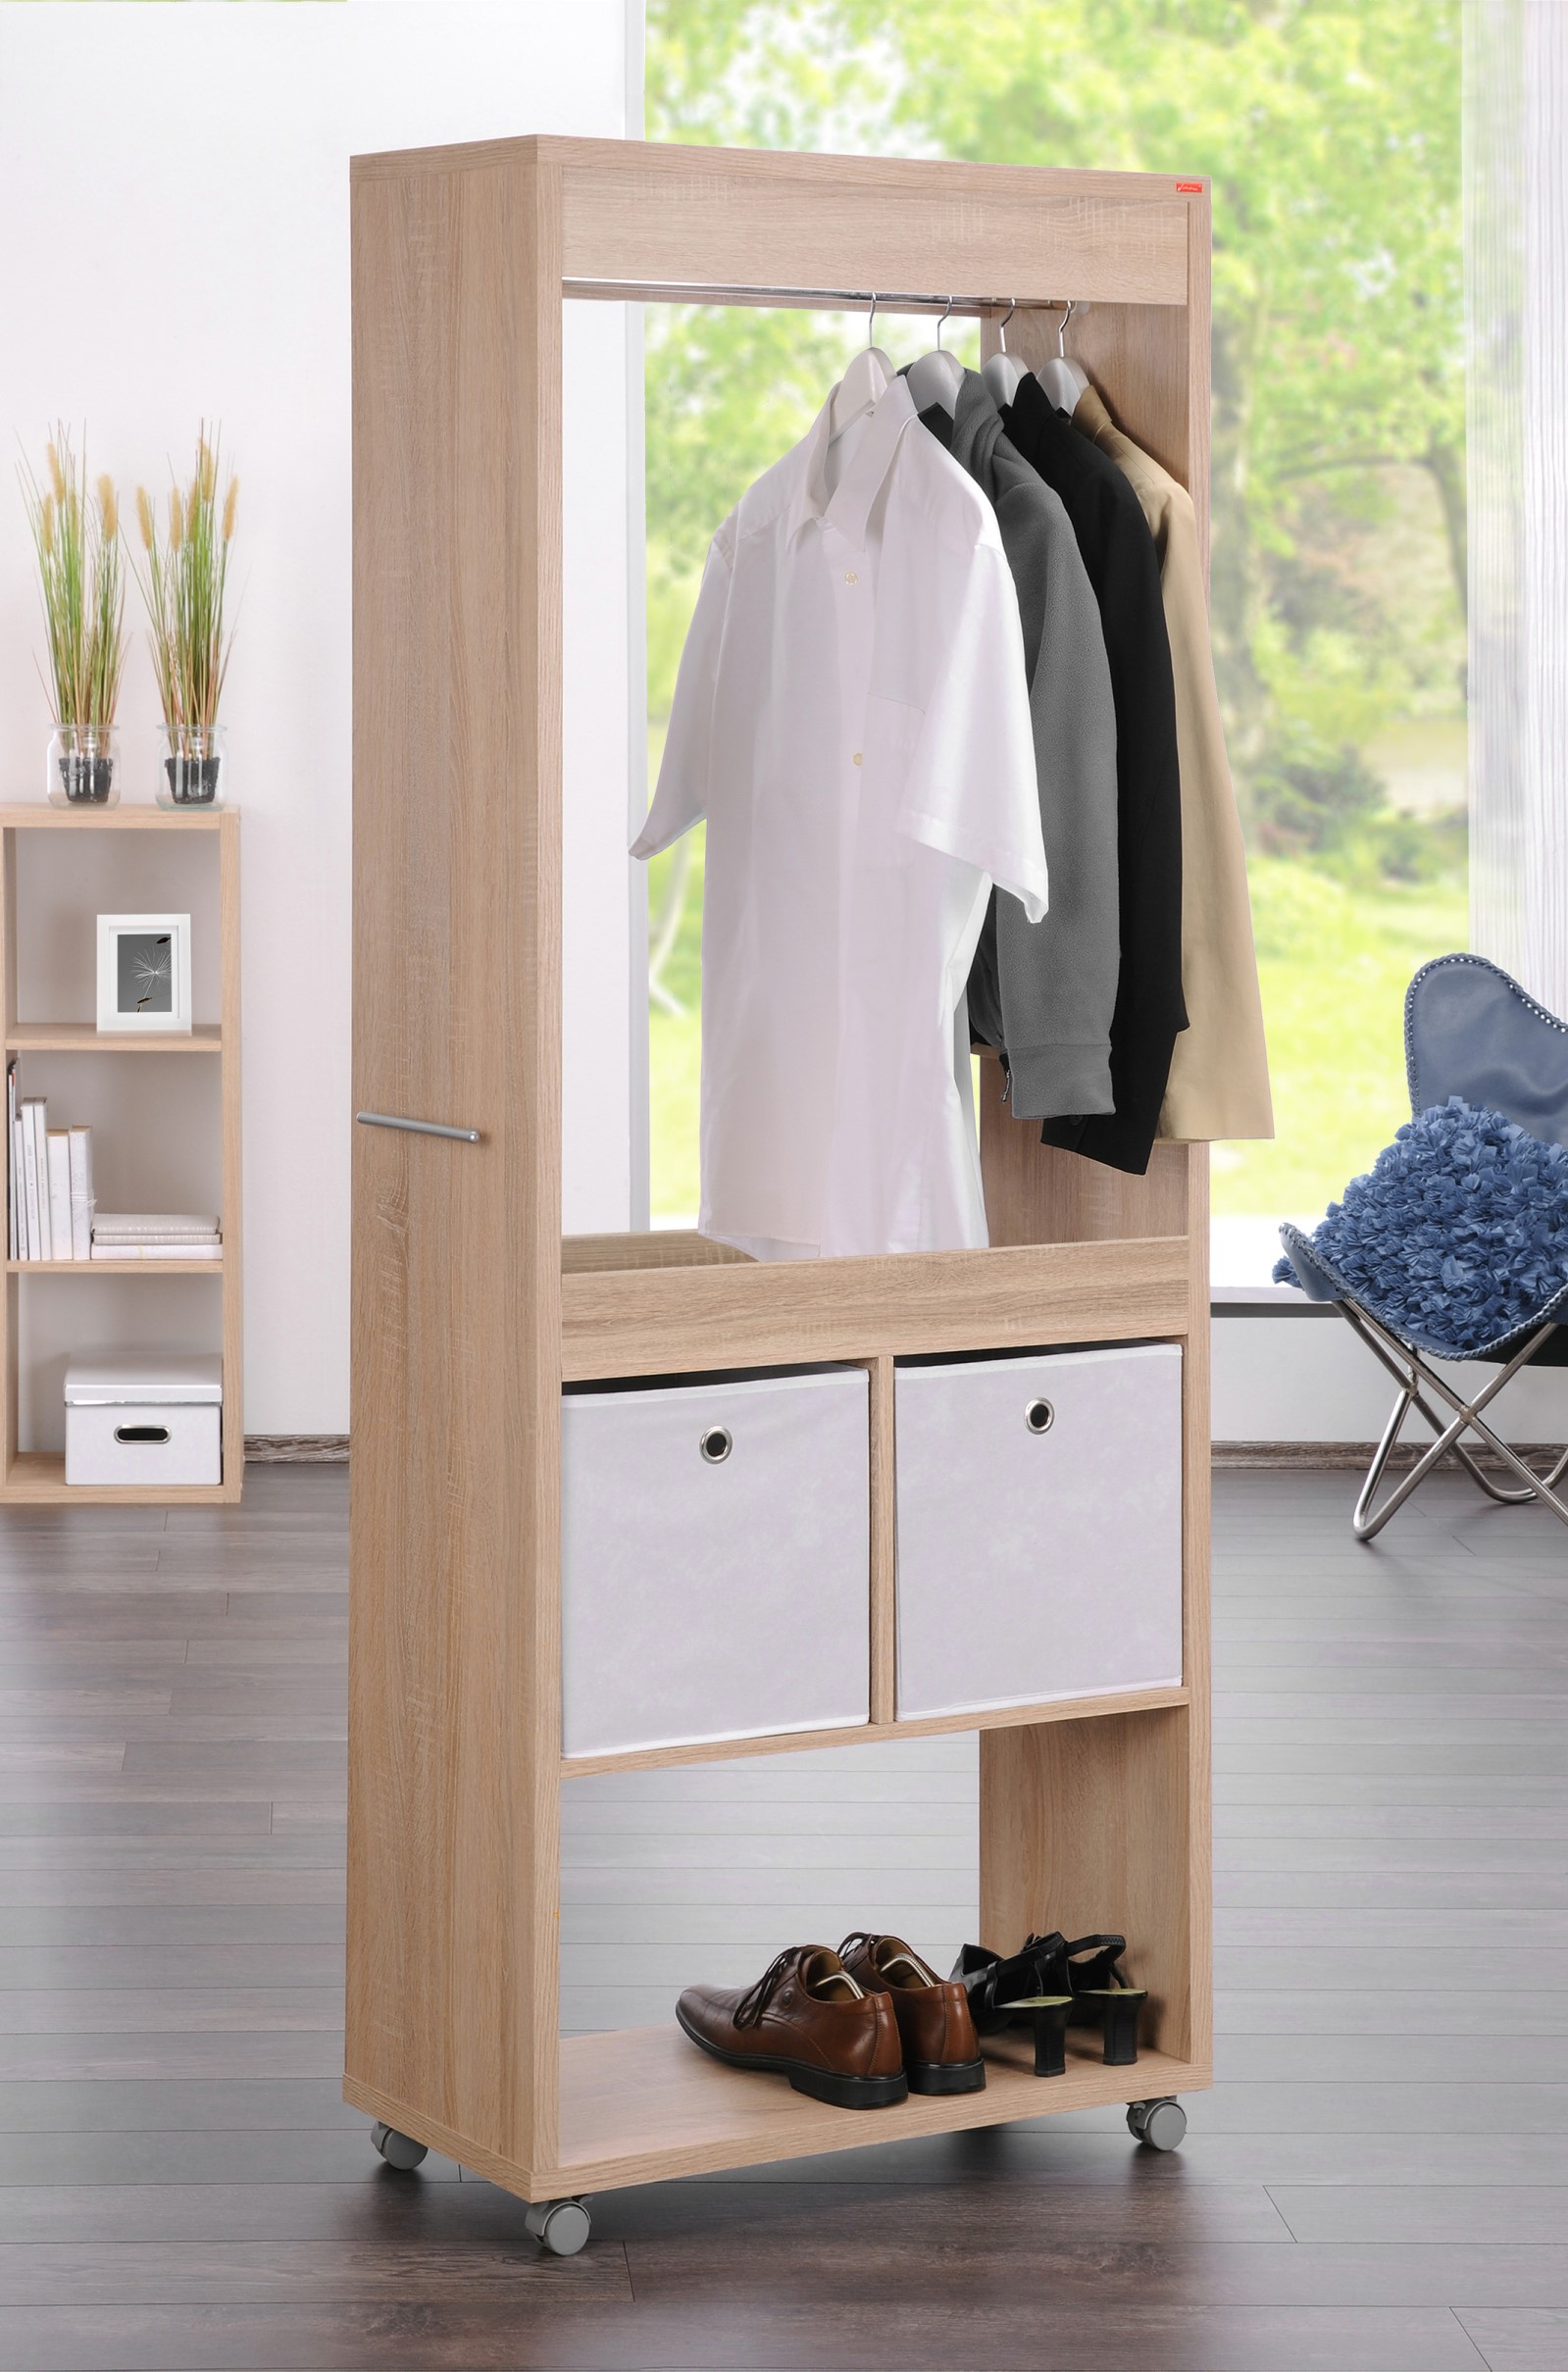 garderobe pony auf rollen rollgarderobe kleiderst nder. Black Bedroom Furniture Sets. Home Design Ideas